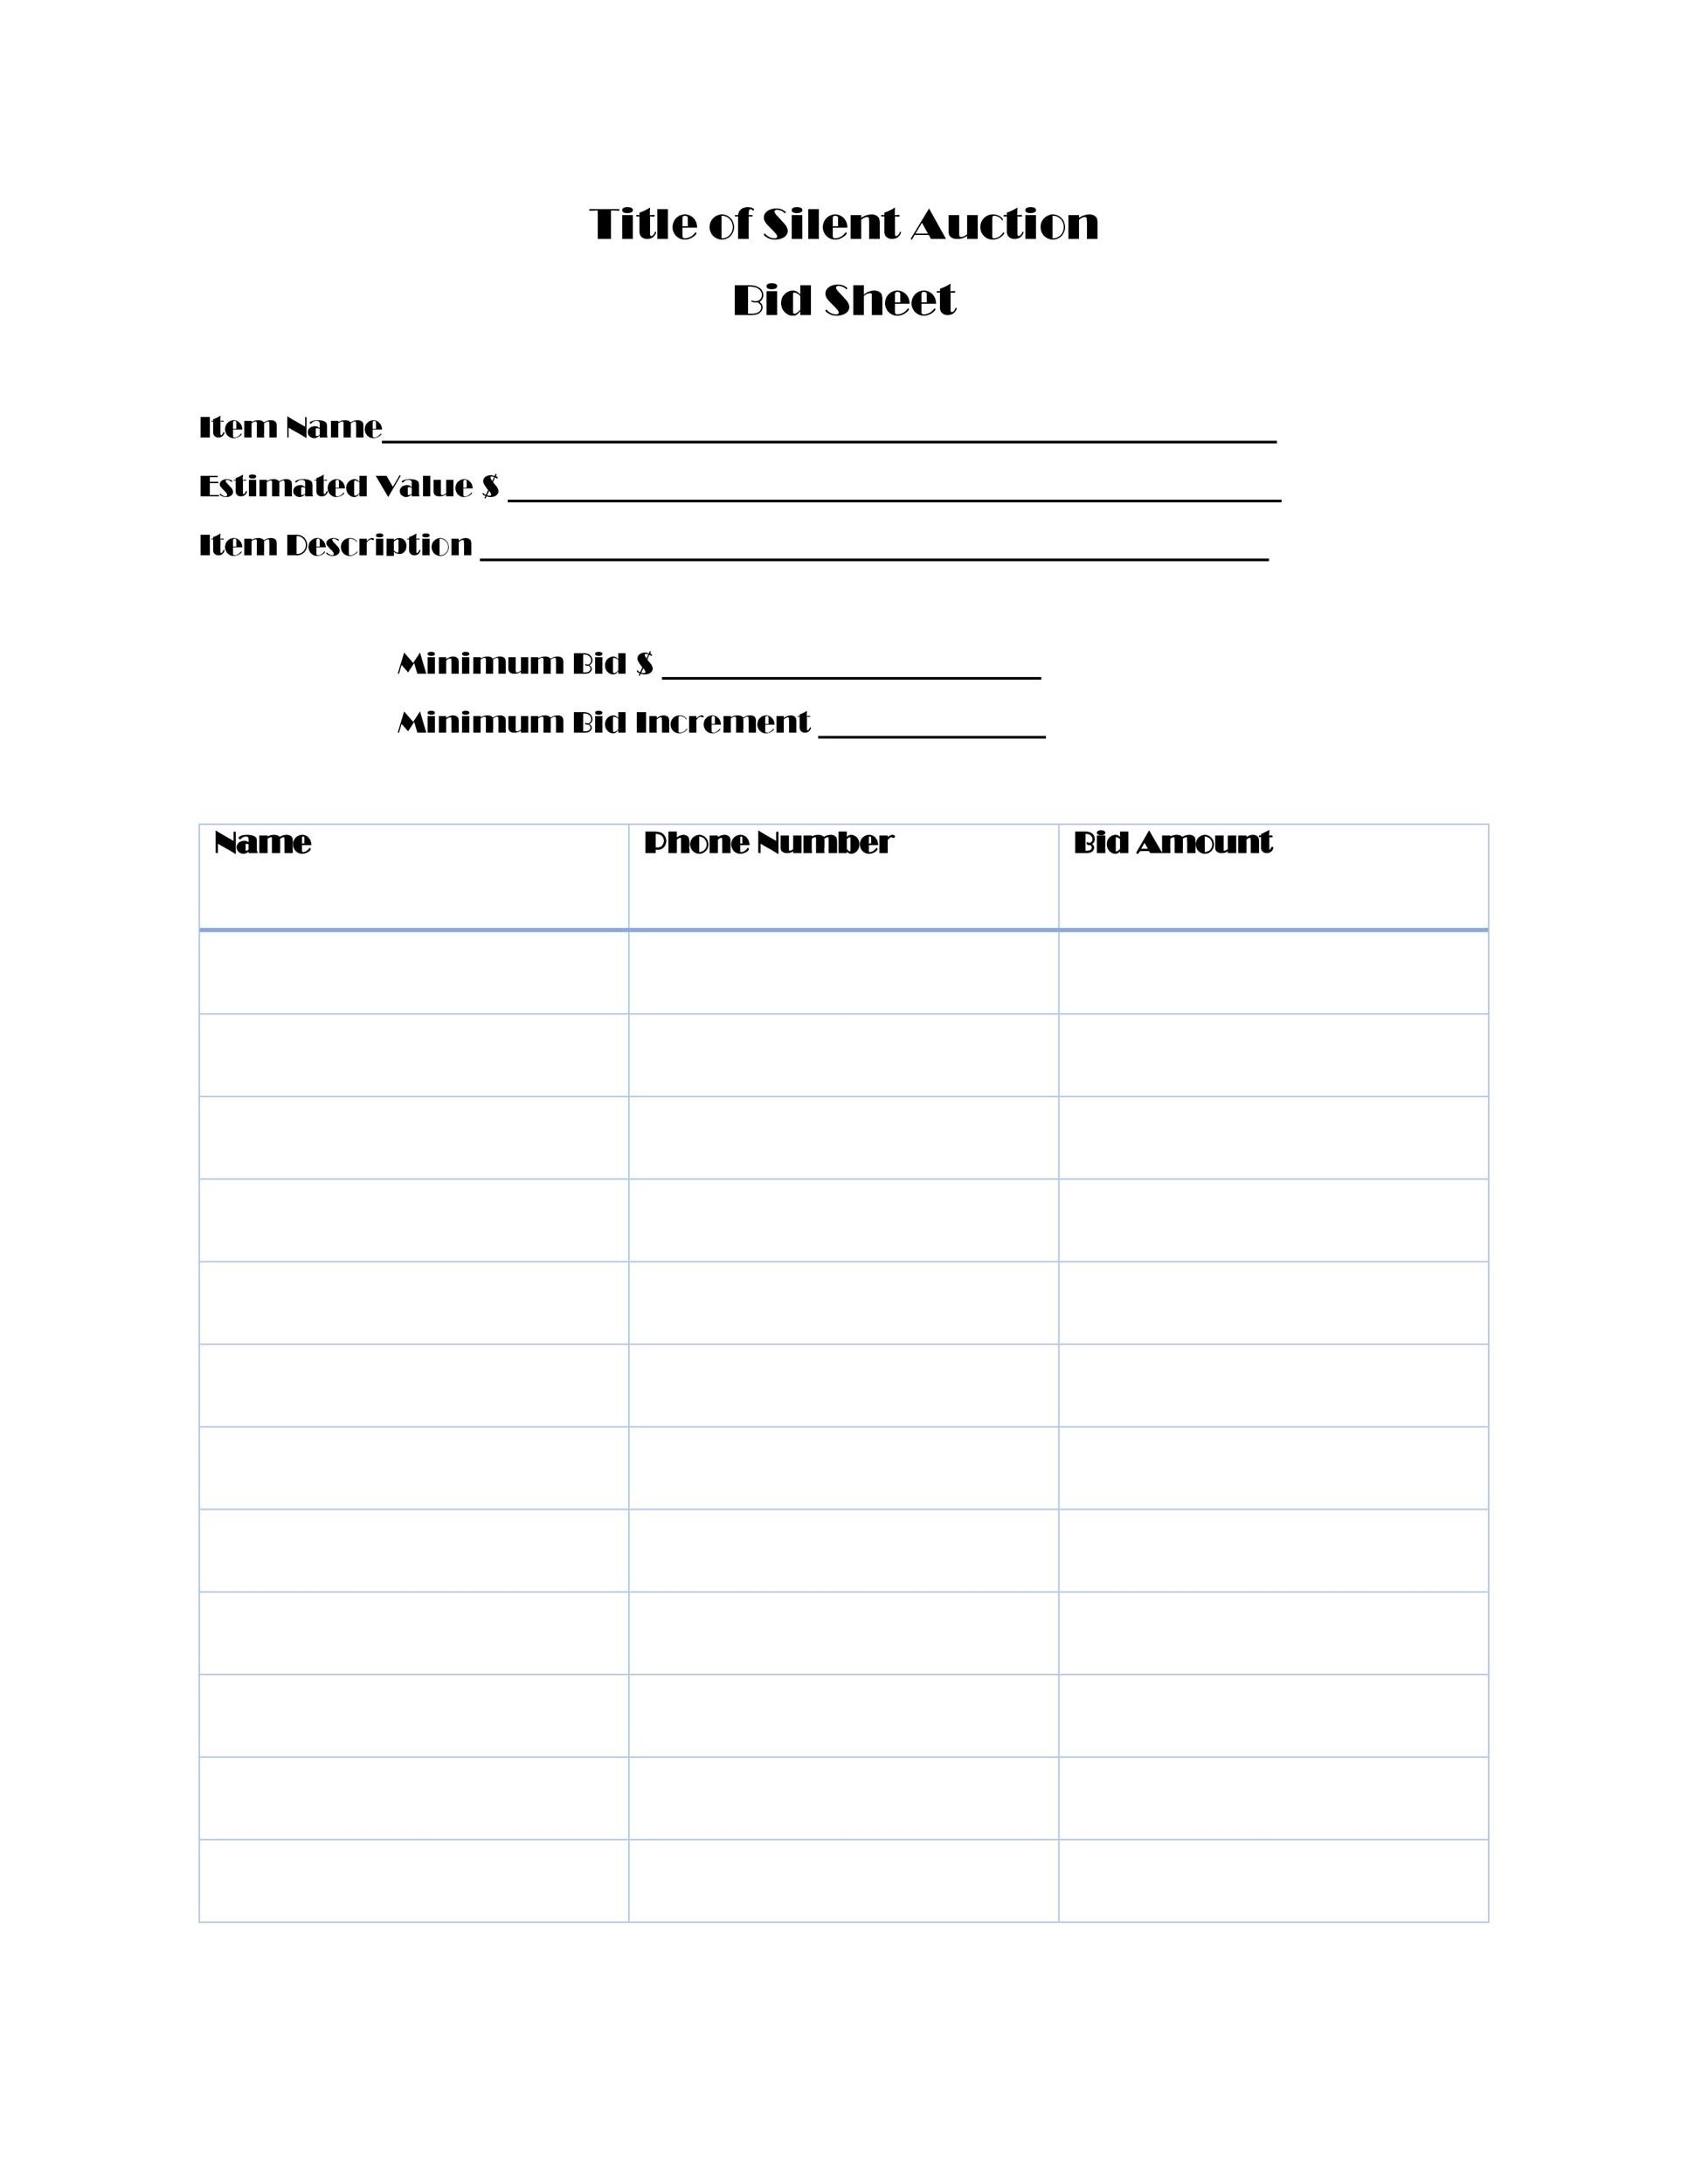 photo relating to Printable Silent Auction Bid Sheets named 40+ Quiet Auction Bid Sheet Templates [Term, Excel] ᐅ